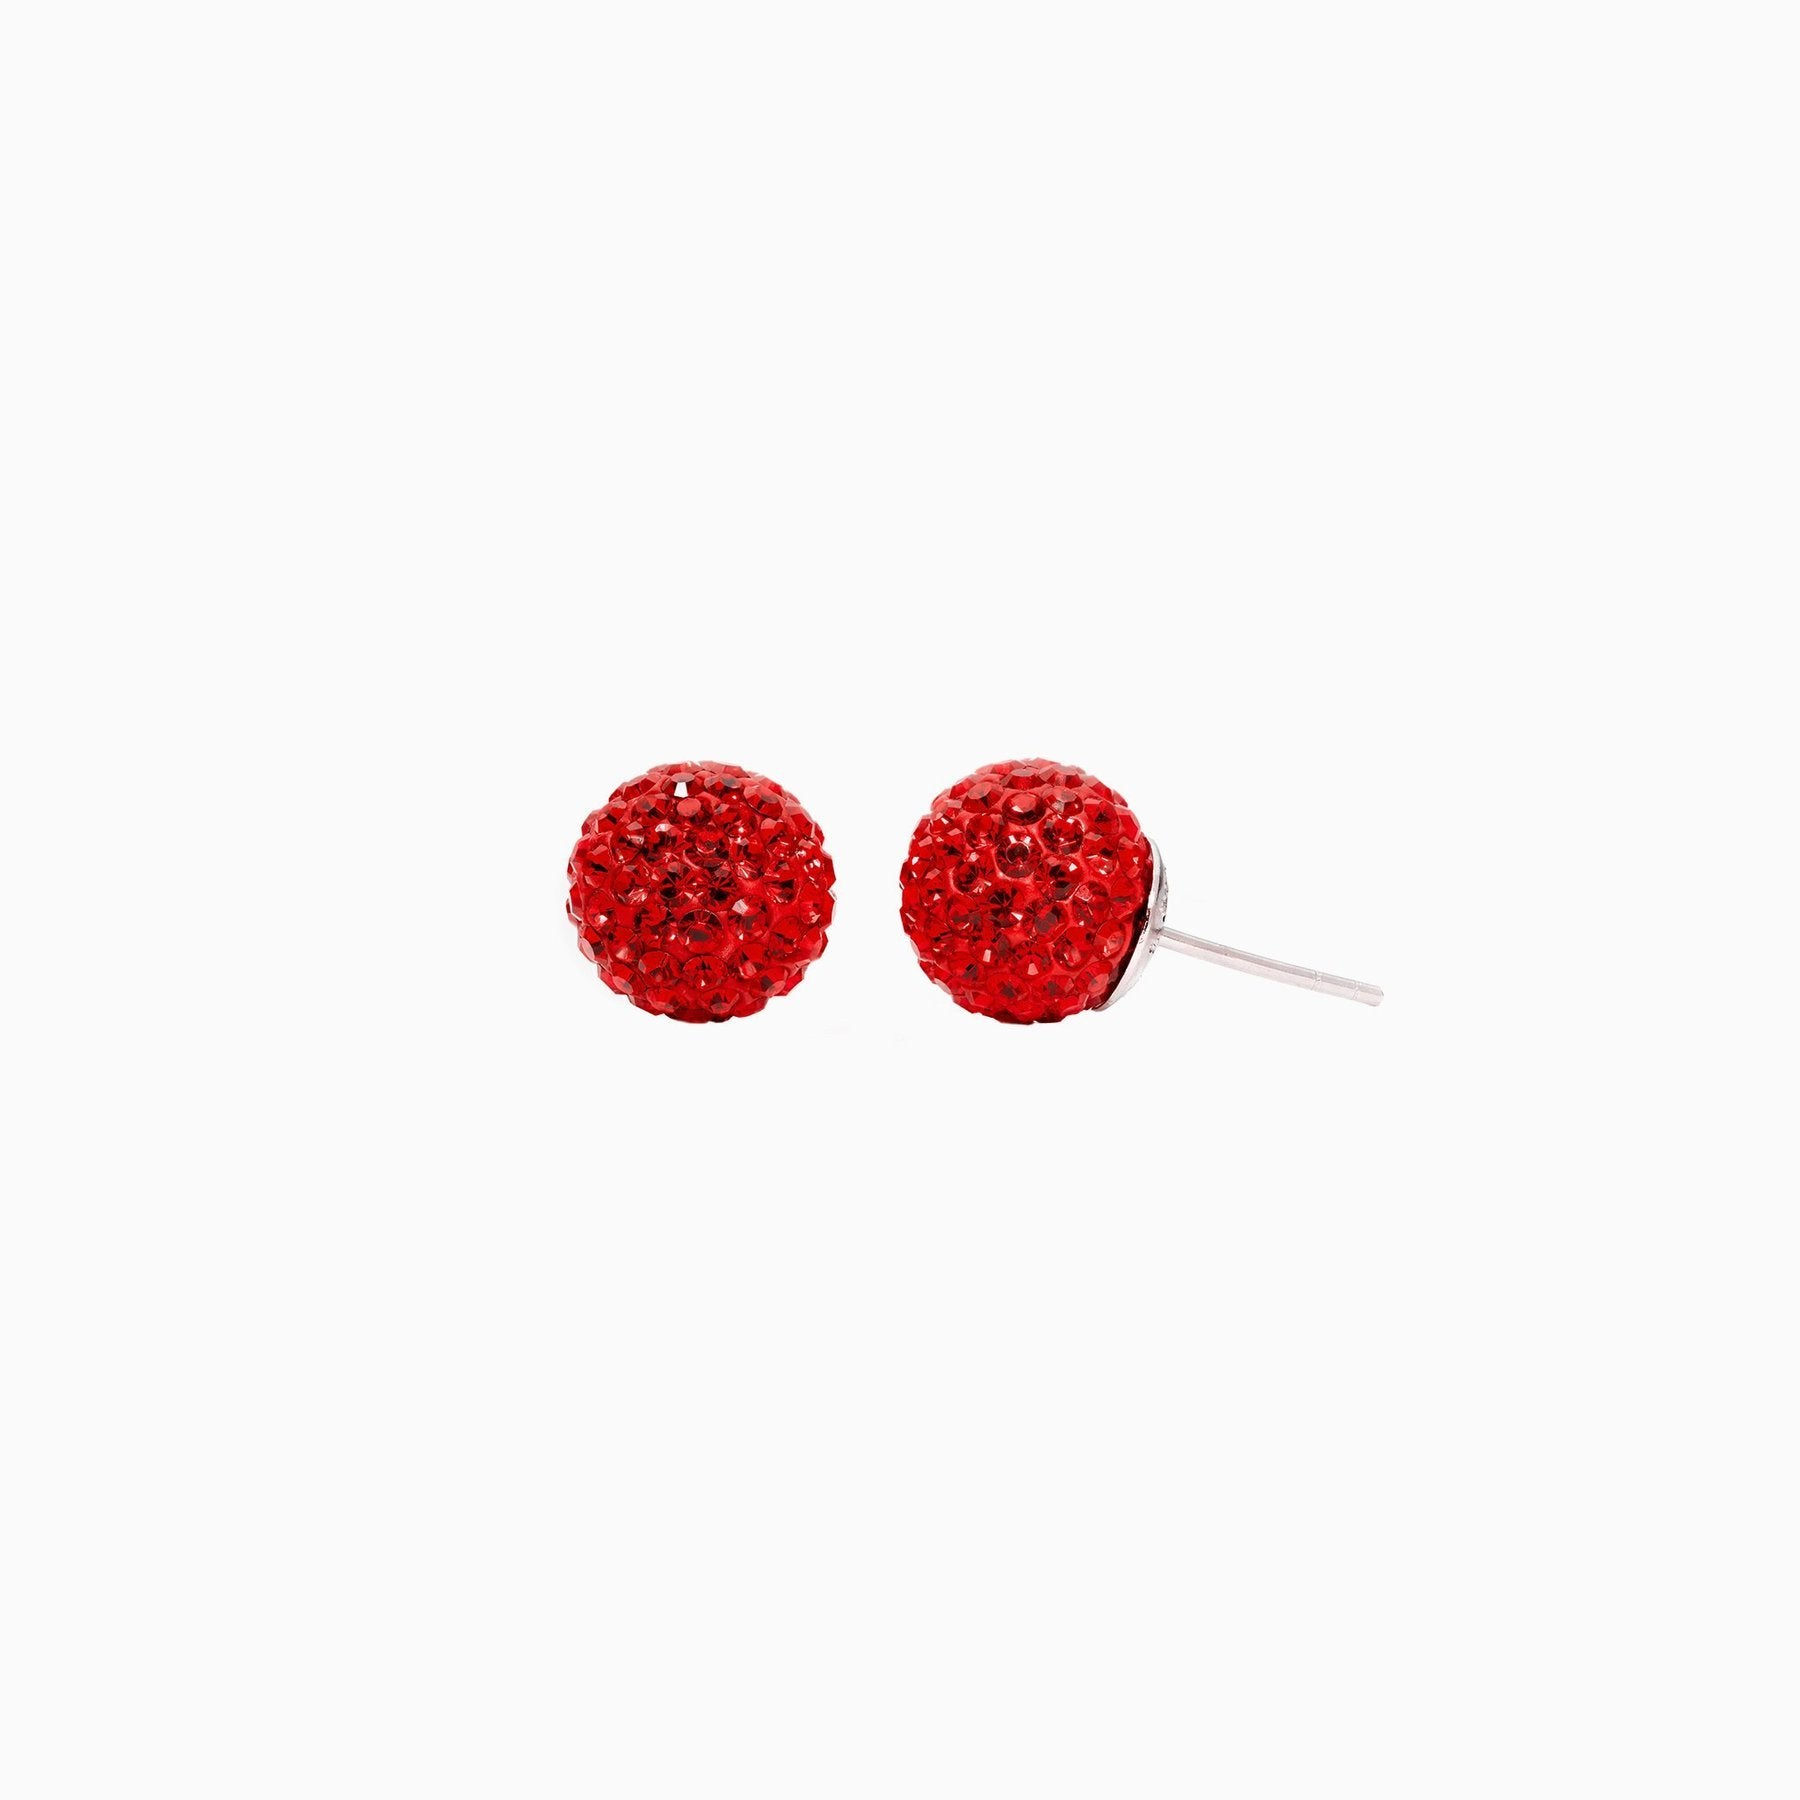 H&B Sparkle Ball™ Stud Earrings - 10mm Red